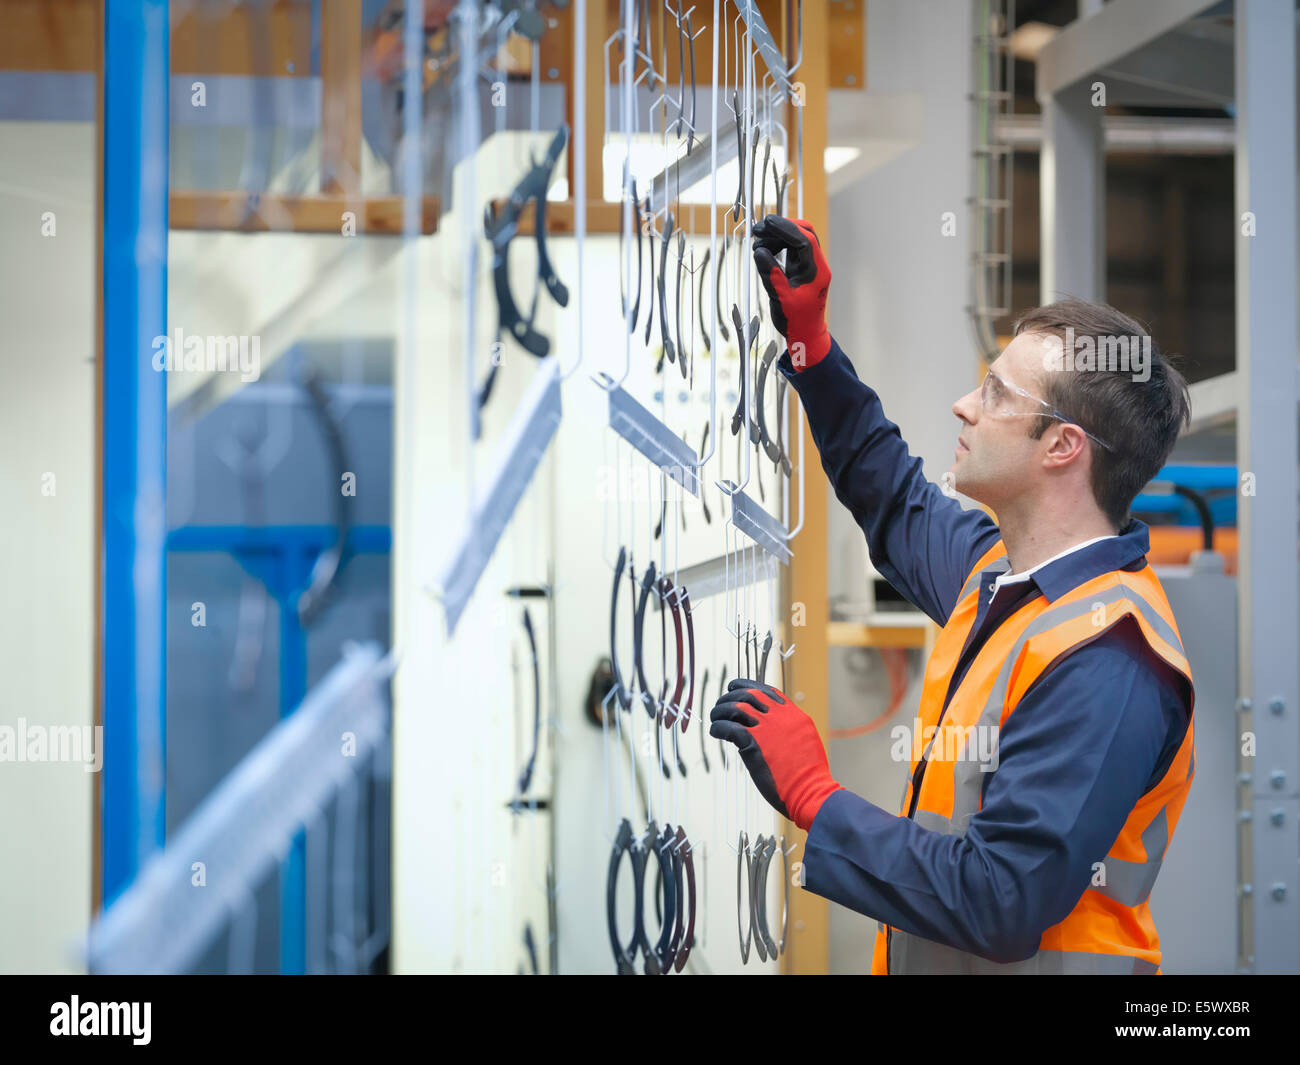 Worker inspecting painted parts in sheet metal factory - Stock Image